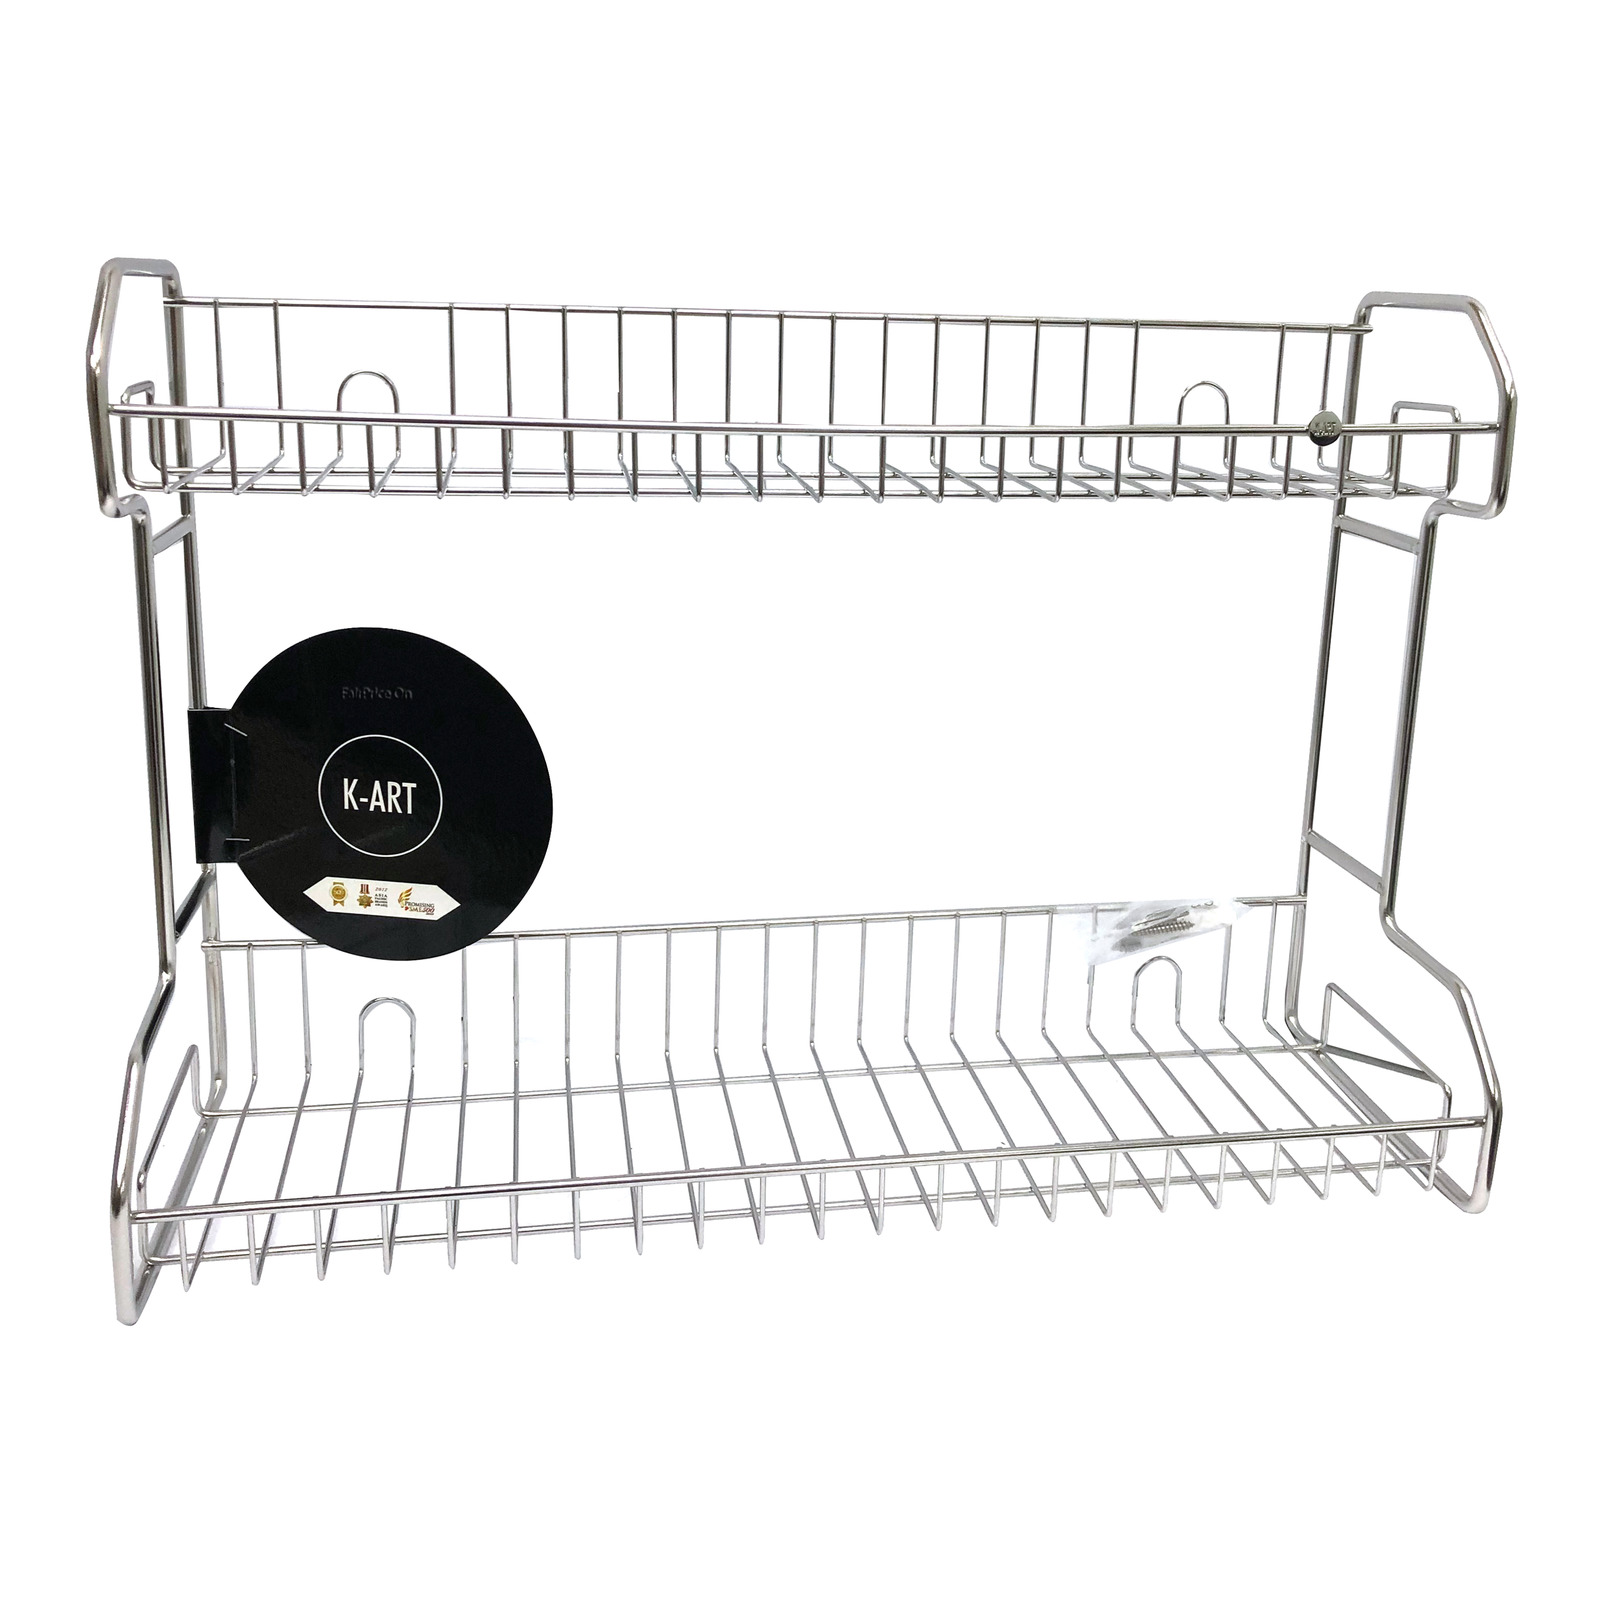 K-Art Rack - 2 Tier